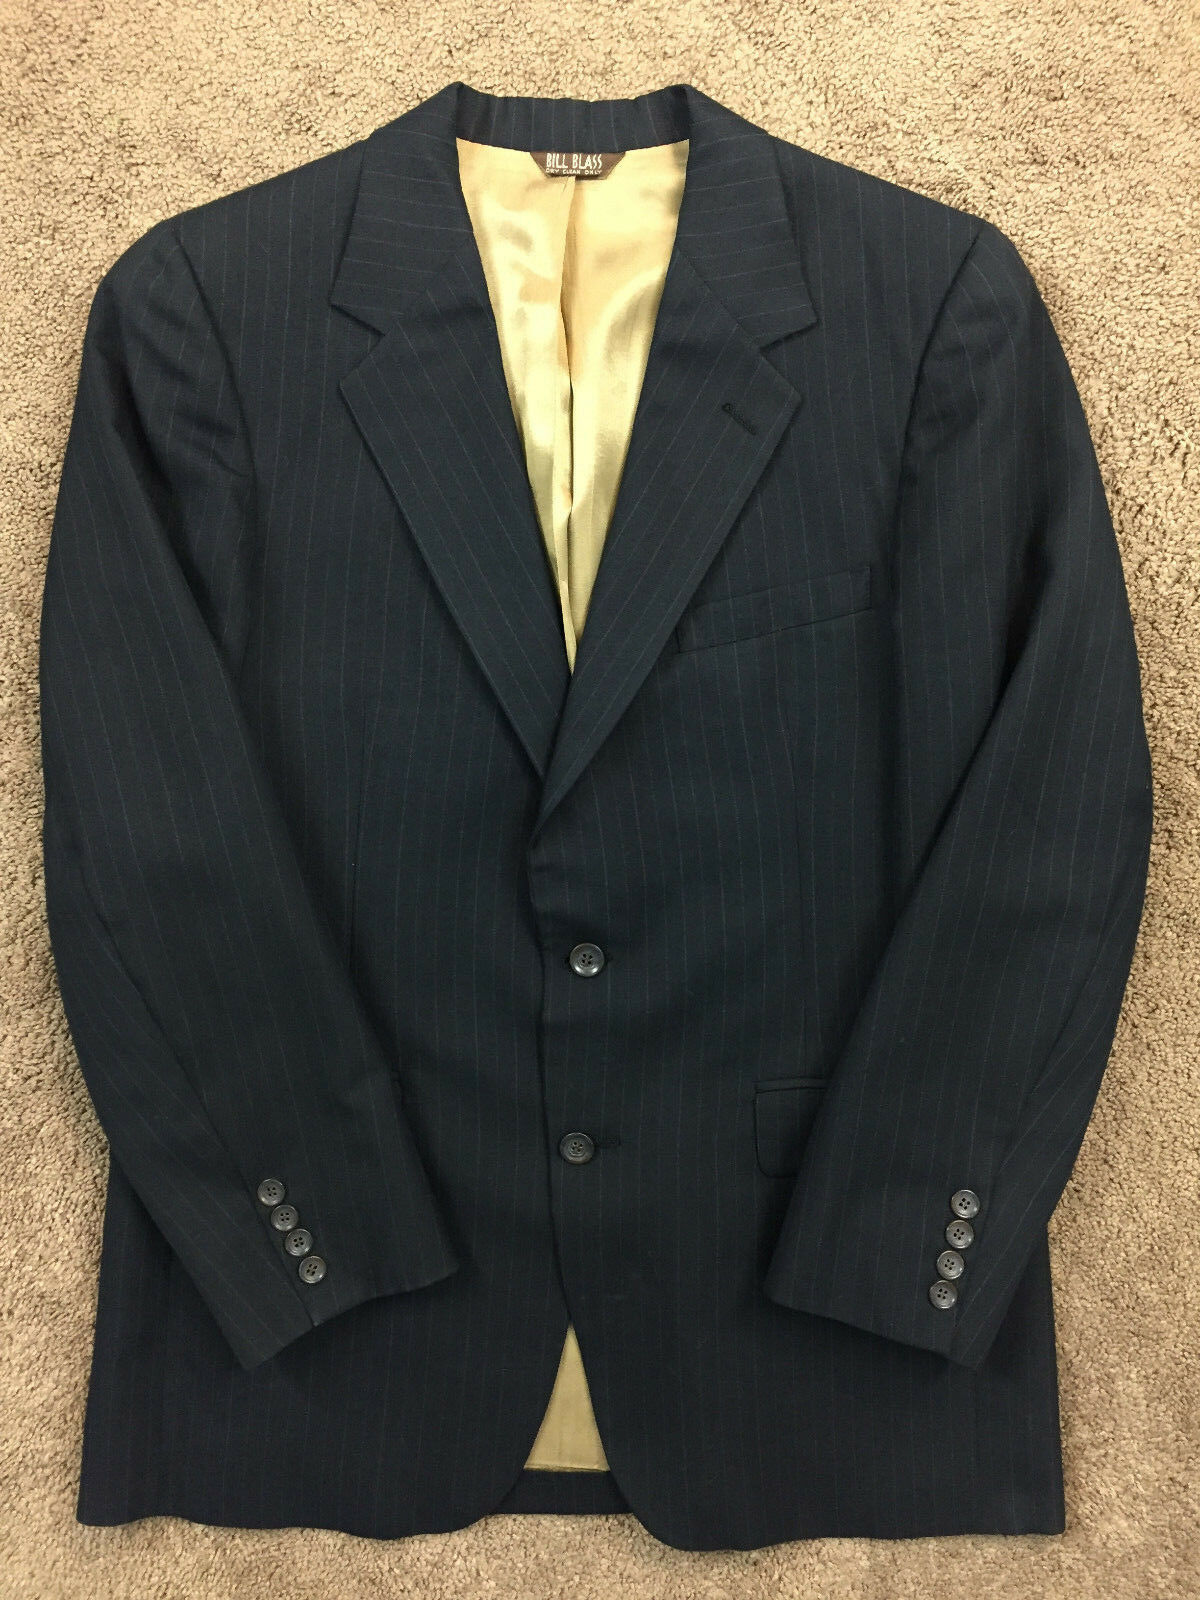 BILL BLASS NAVY Blau PINSTRIPE SUIT EXCELLENT 38 FLAT FRONT